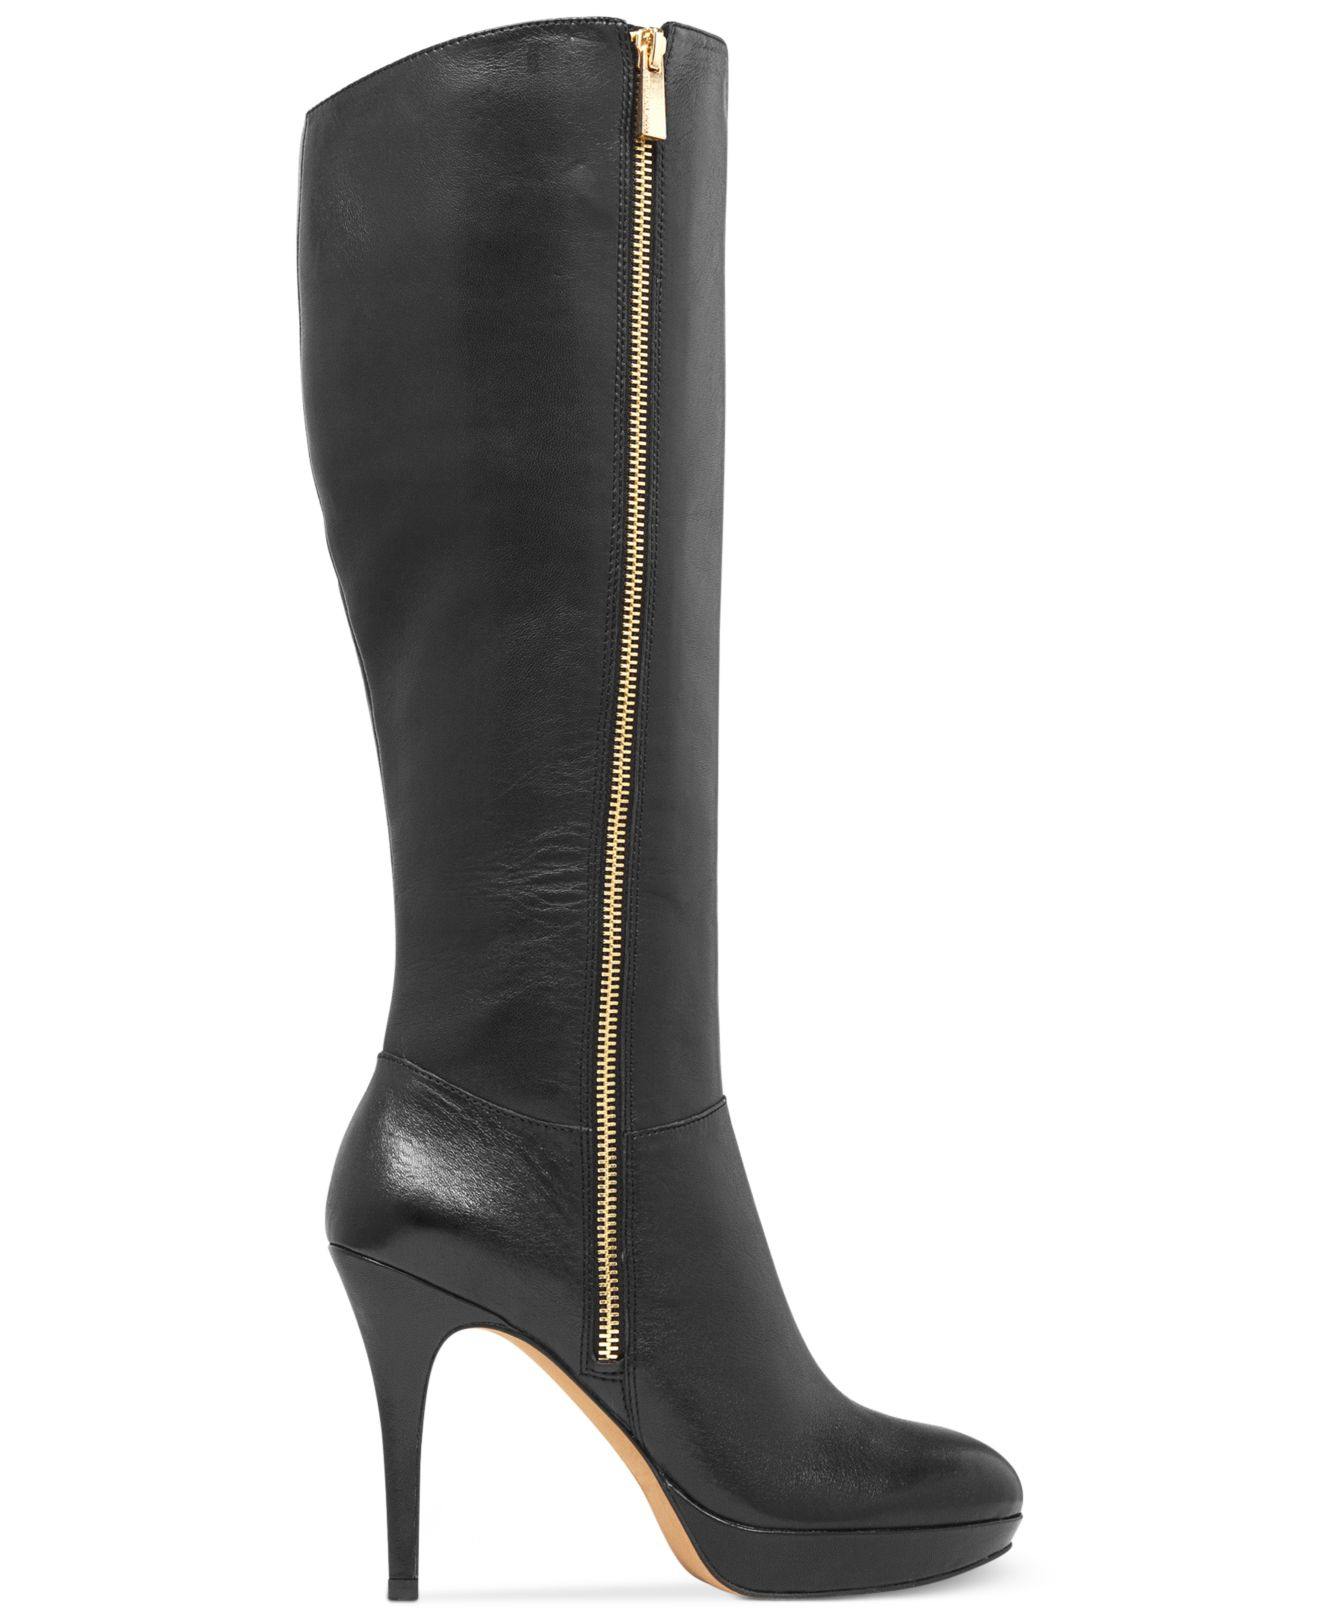 Buy Vince Camuto Shoes Canada